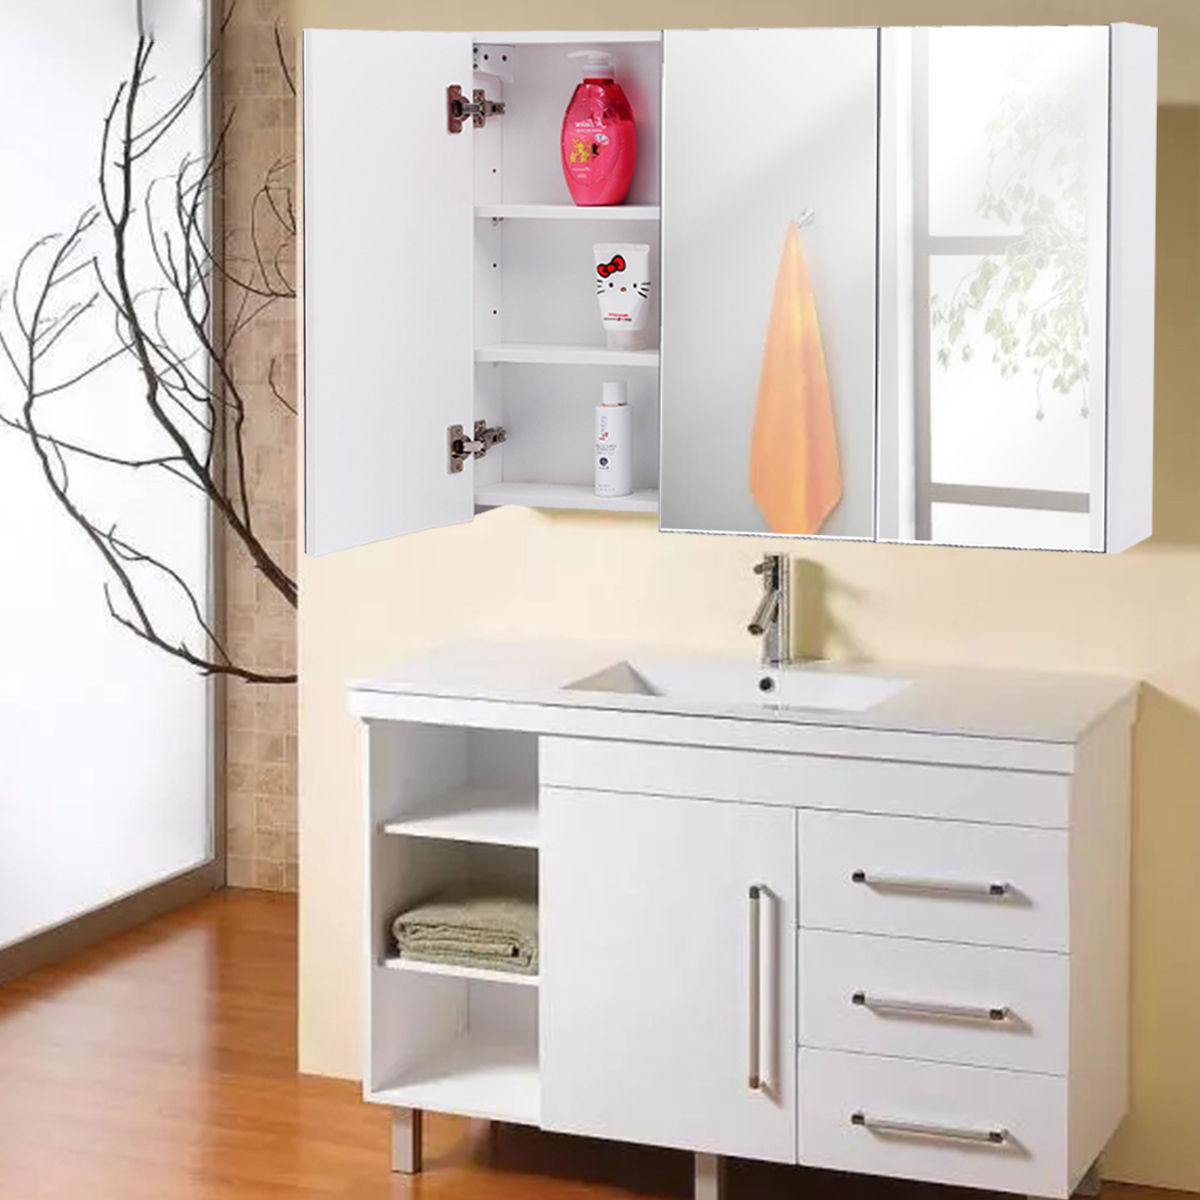 Costway 36 Wide Bathroom Mirrored Mount Wall Medicine